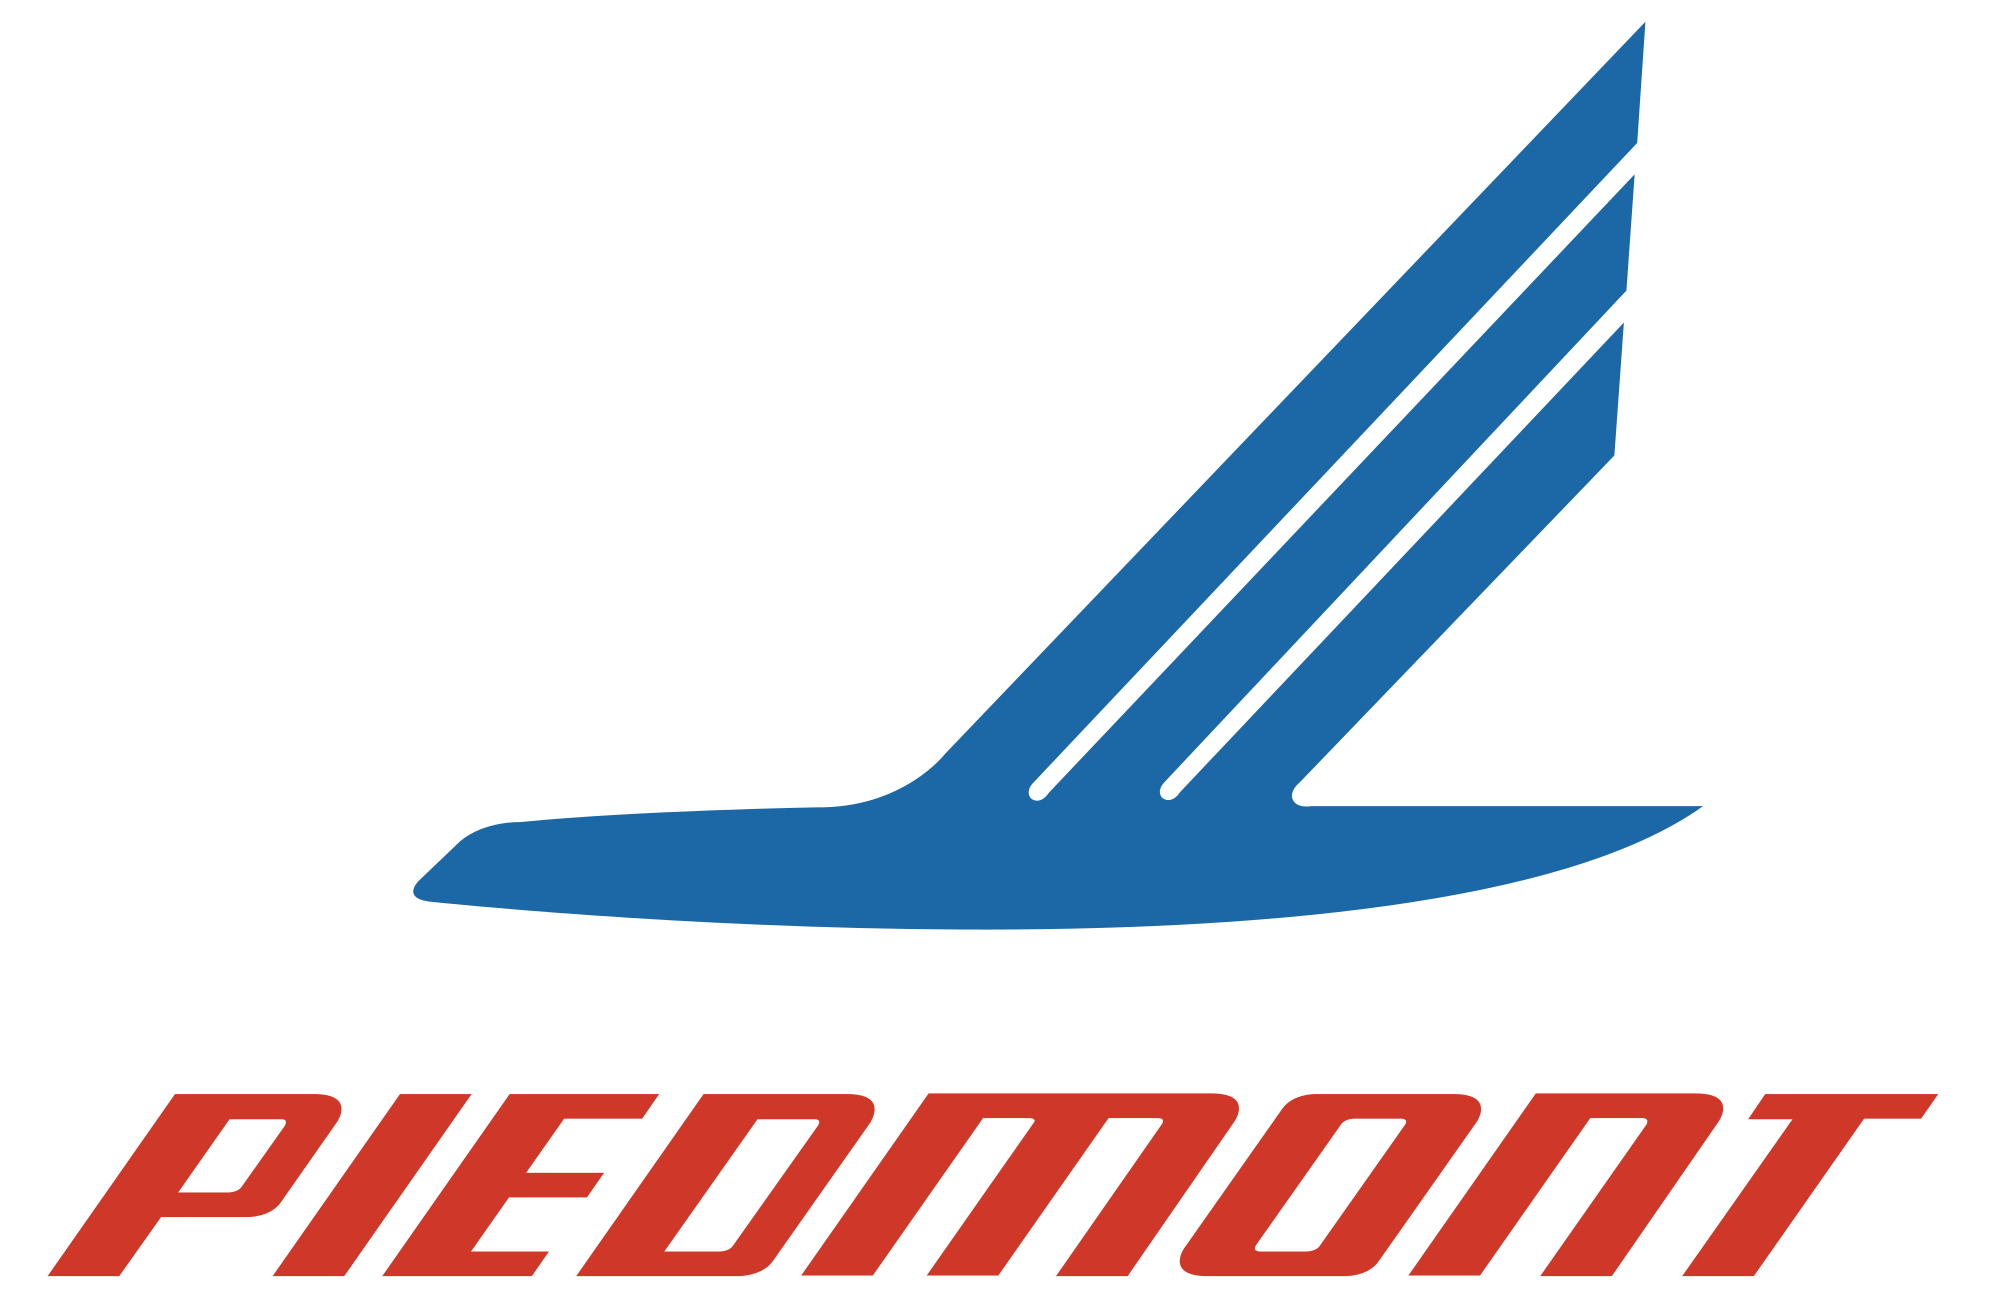 Svg airline twin otter. Piedmont airlines wikipedia logosvg